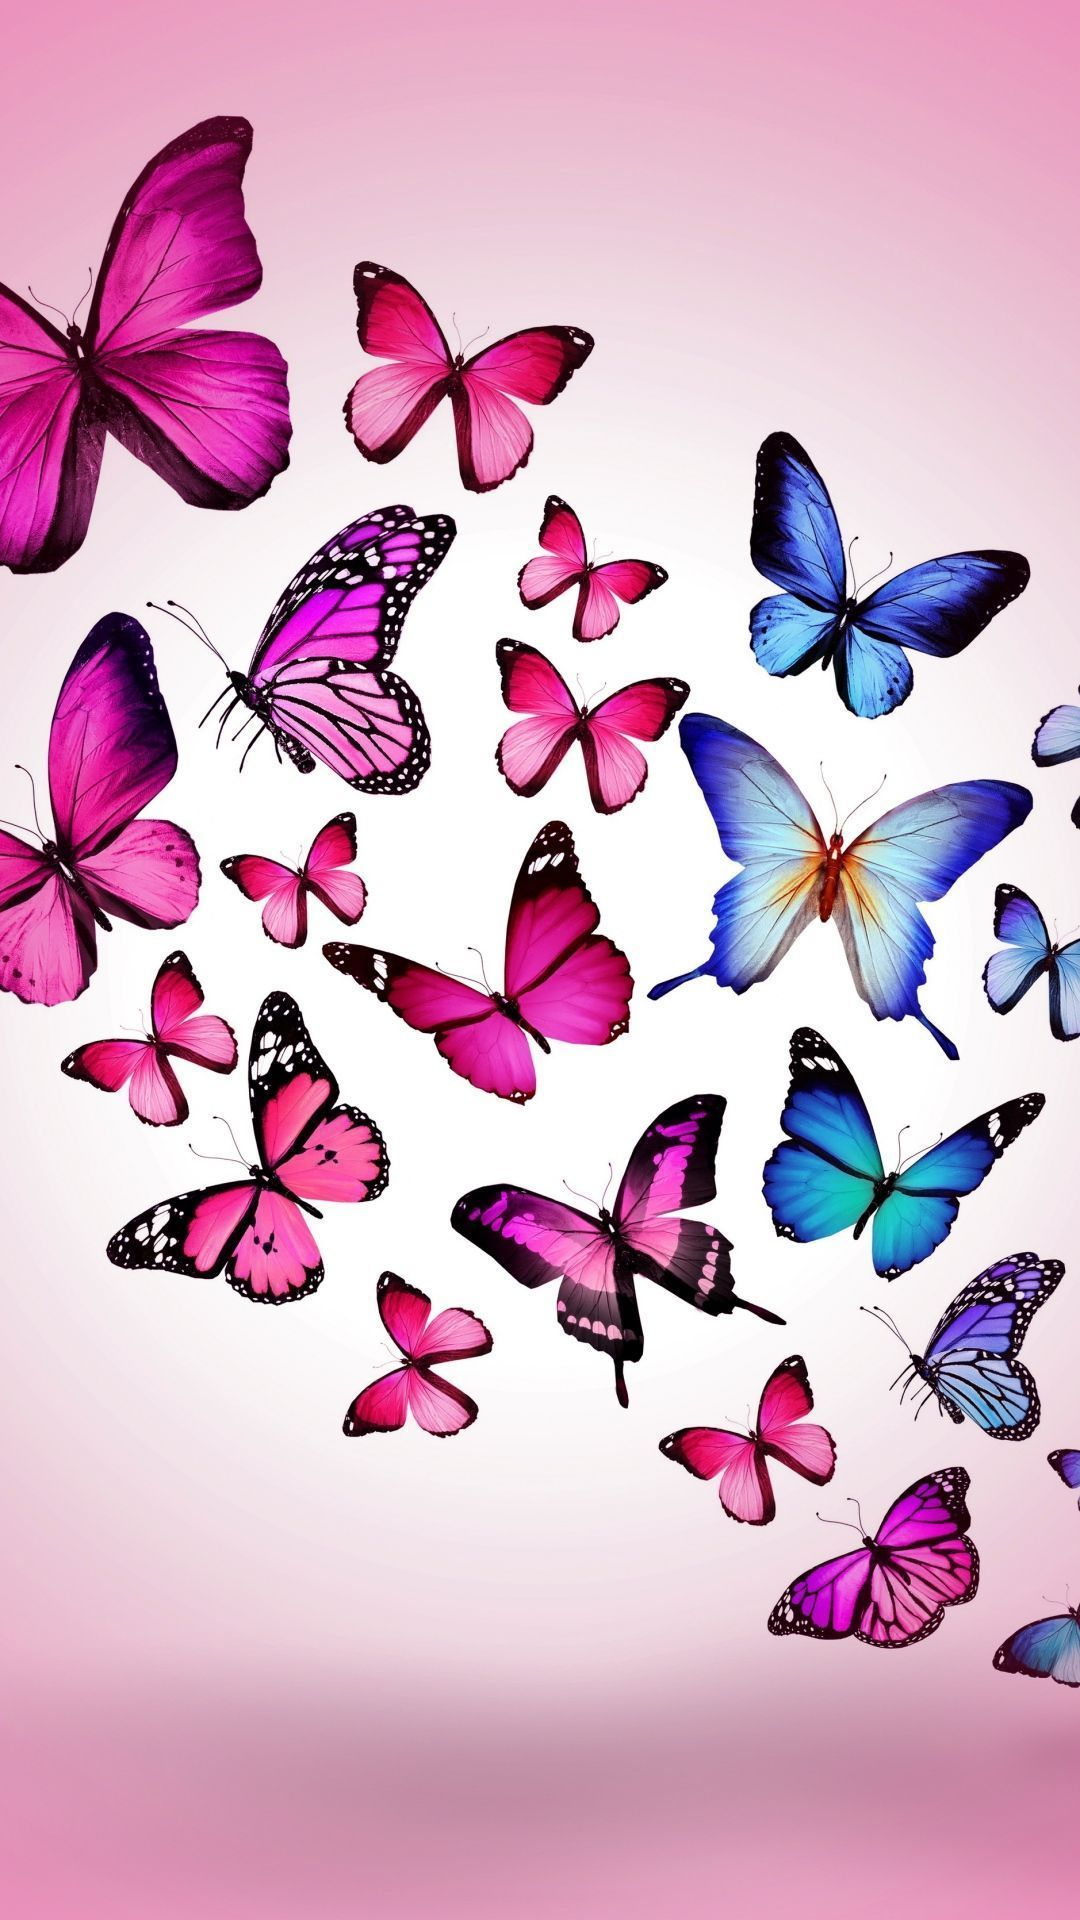 Download Wallpaper 1080x1920 Butterfly Drawing Flying